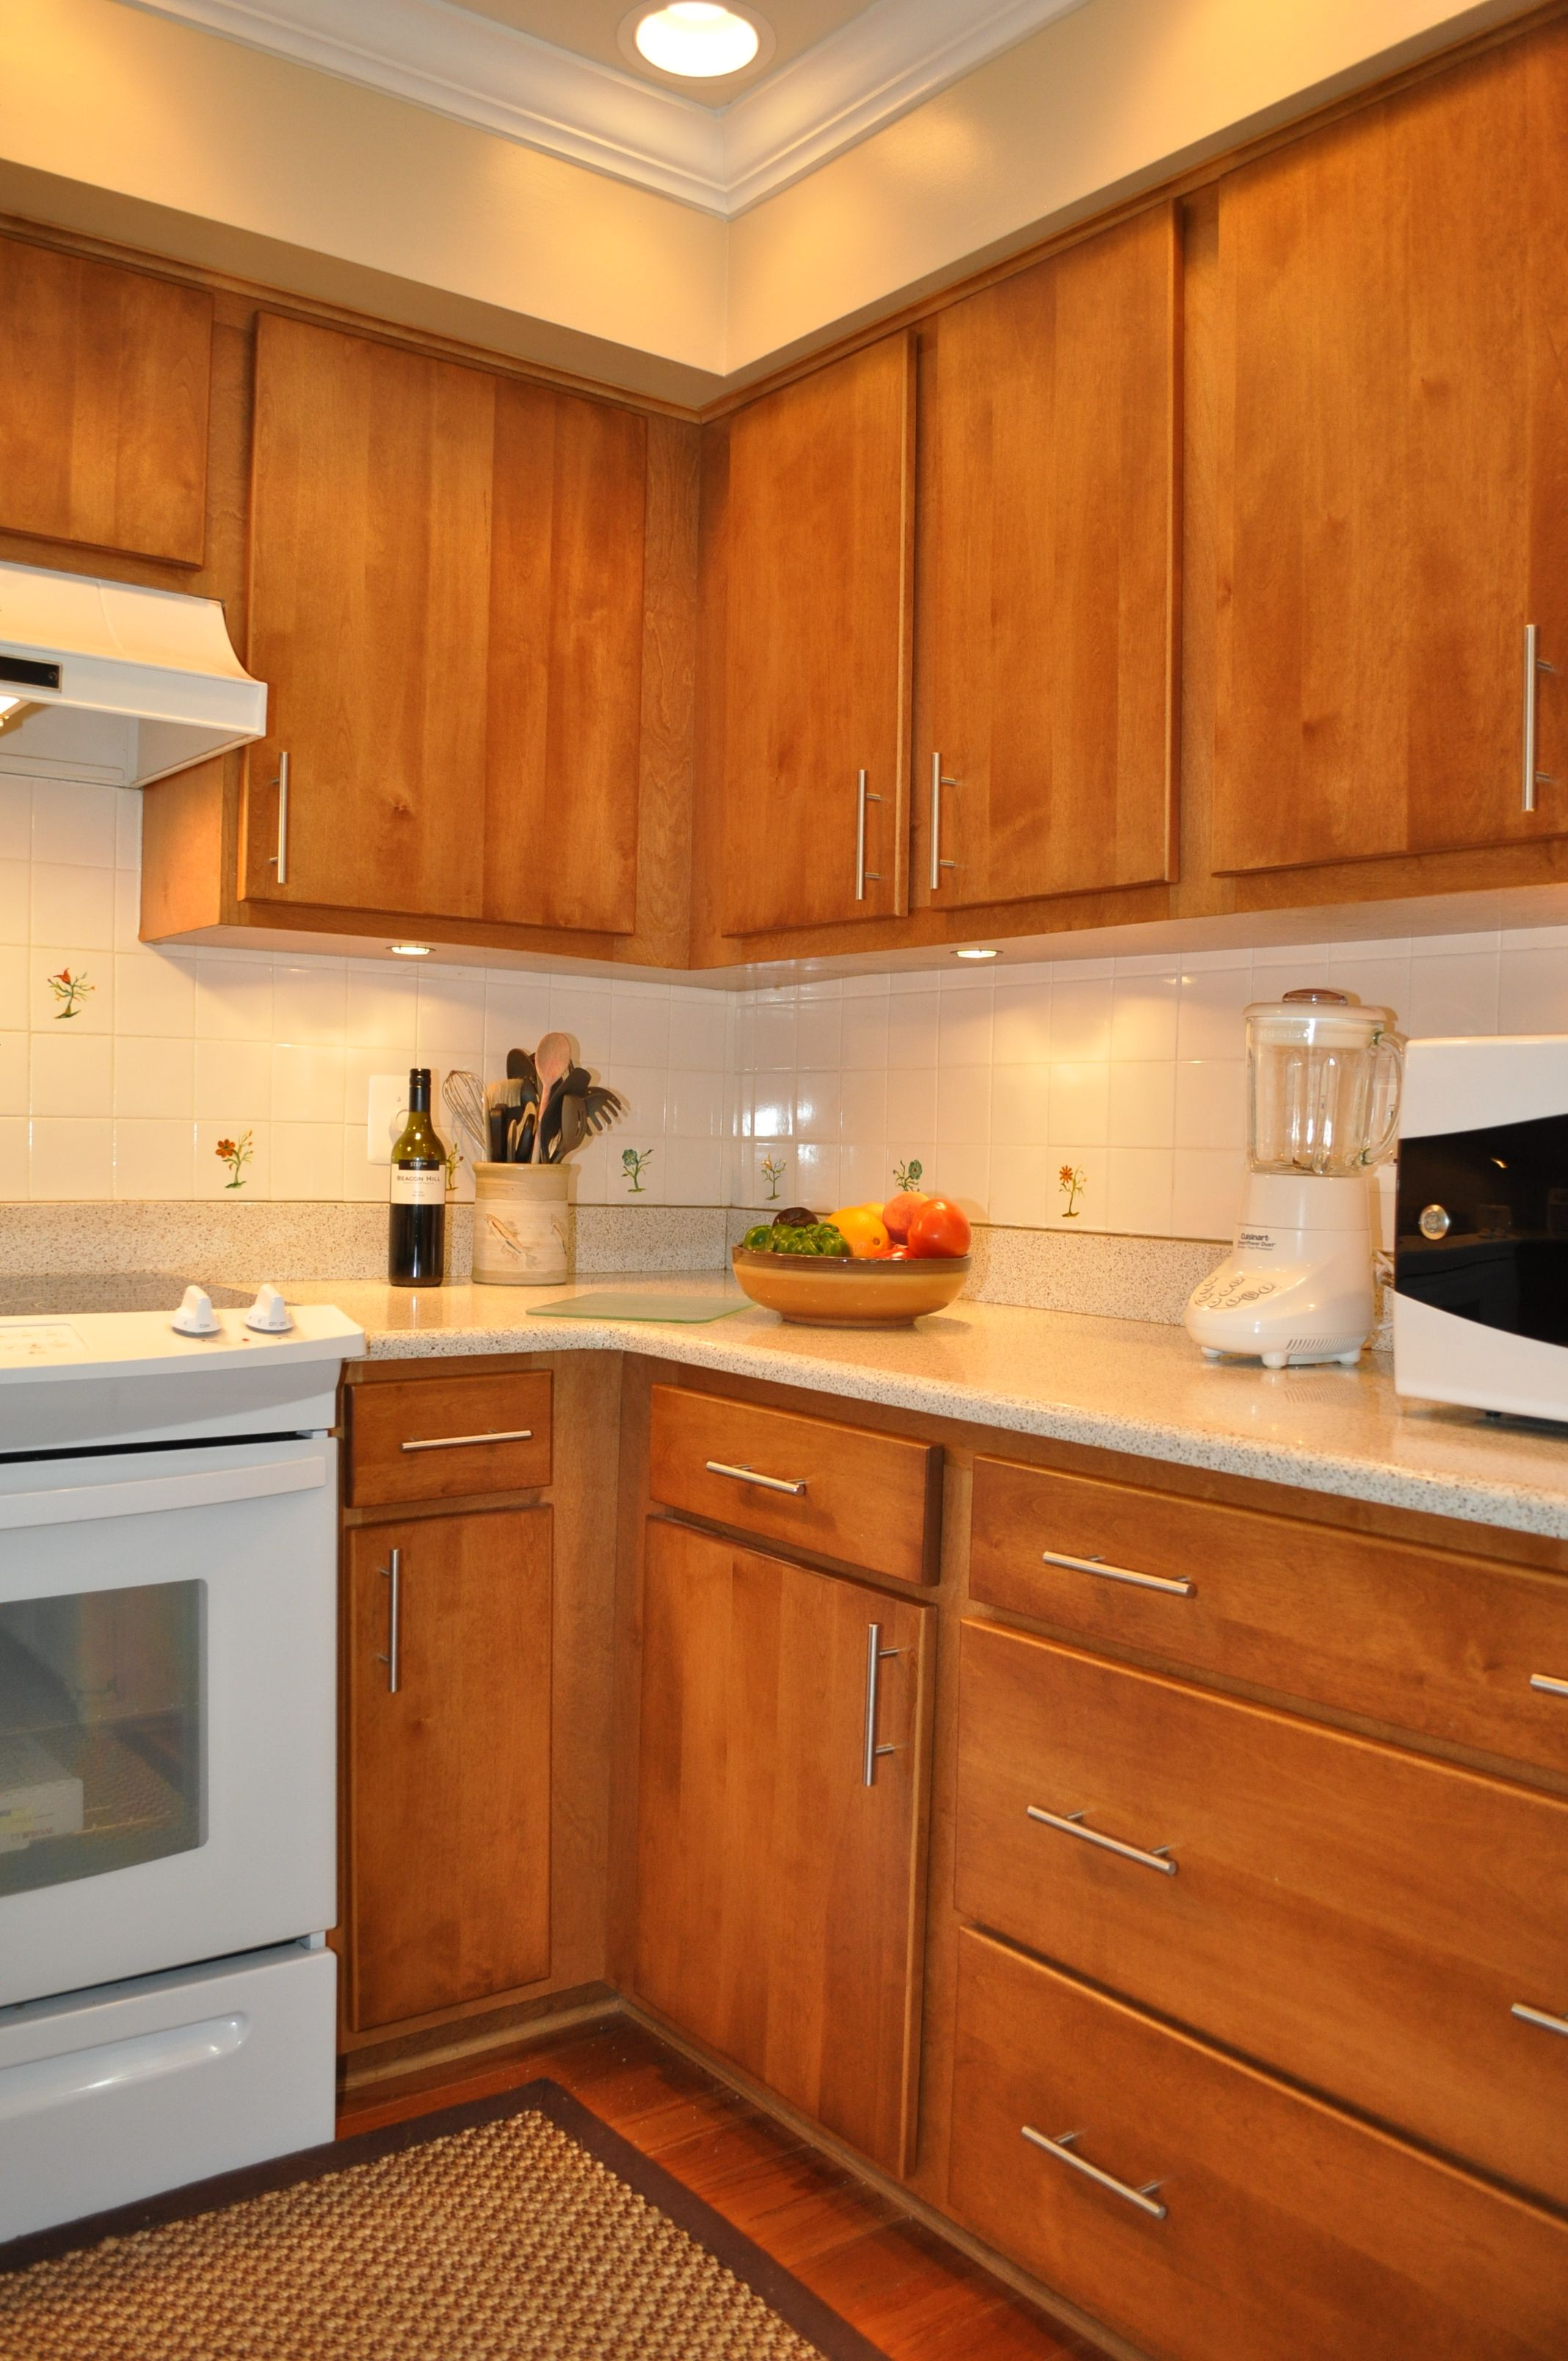 Interior Kitchen Cabinets Washington Dc the bar handles on these cabinets make for easy access to utensils repin if kitchen refacingkitchen cabinetswashington dc